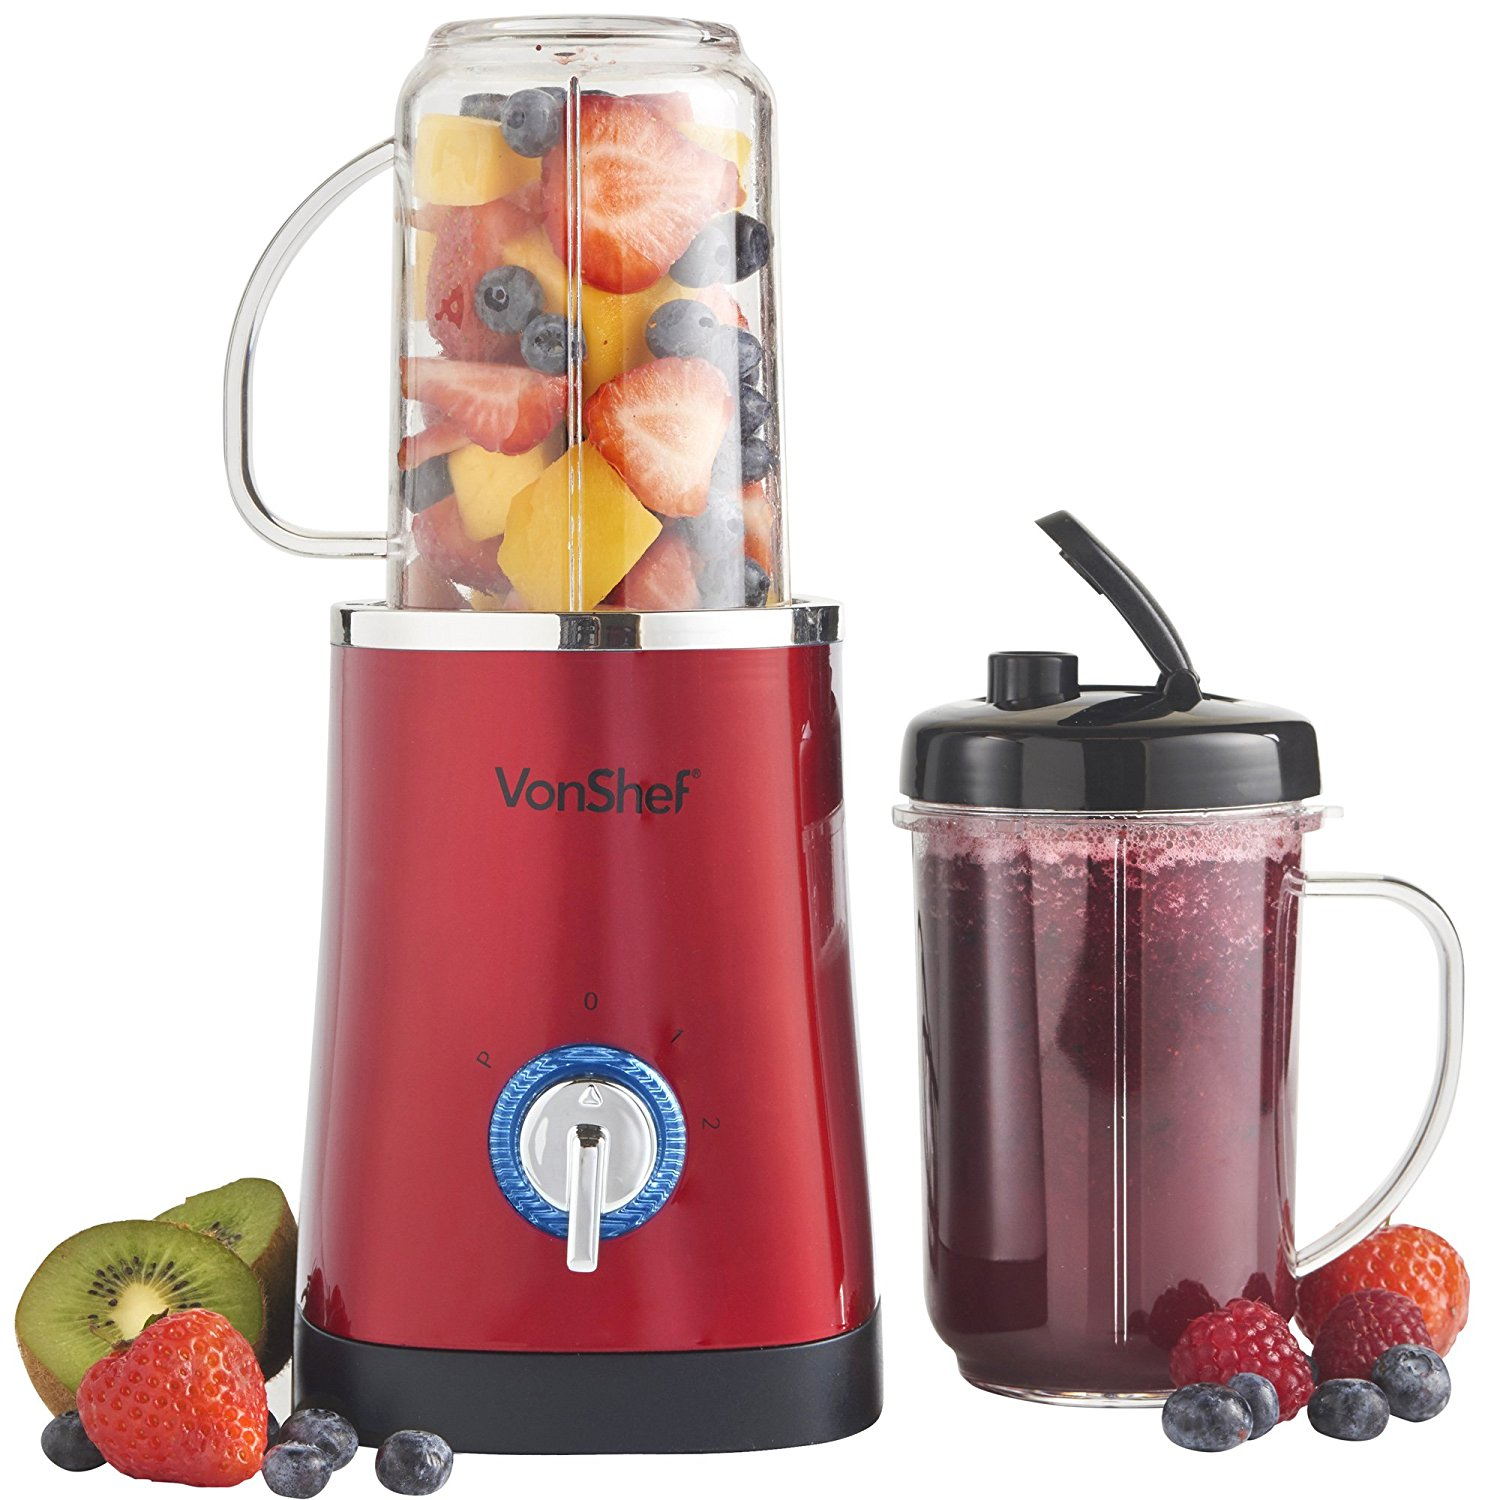 Vonshef Blender Juicer Grinder & Smoothie Maker for 220 Volts & 50 hz